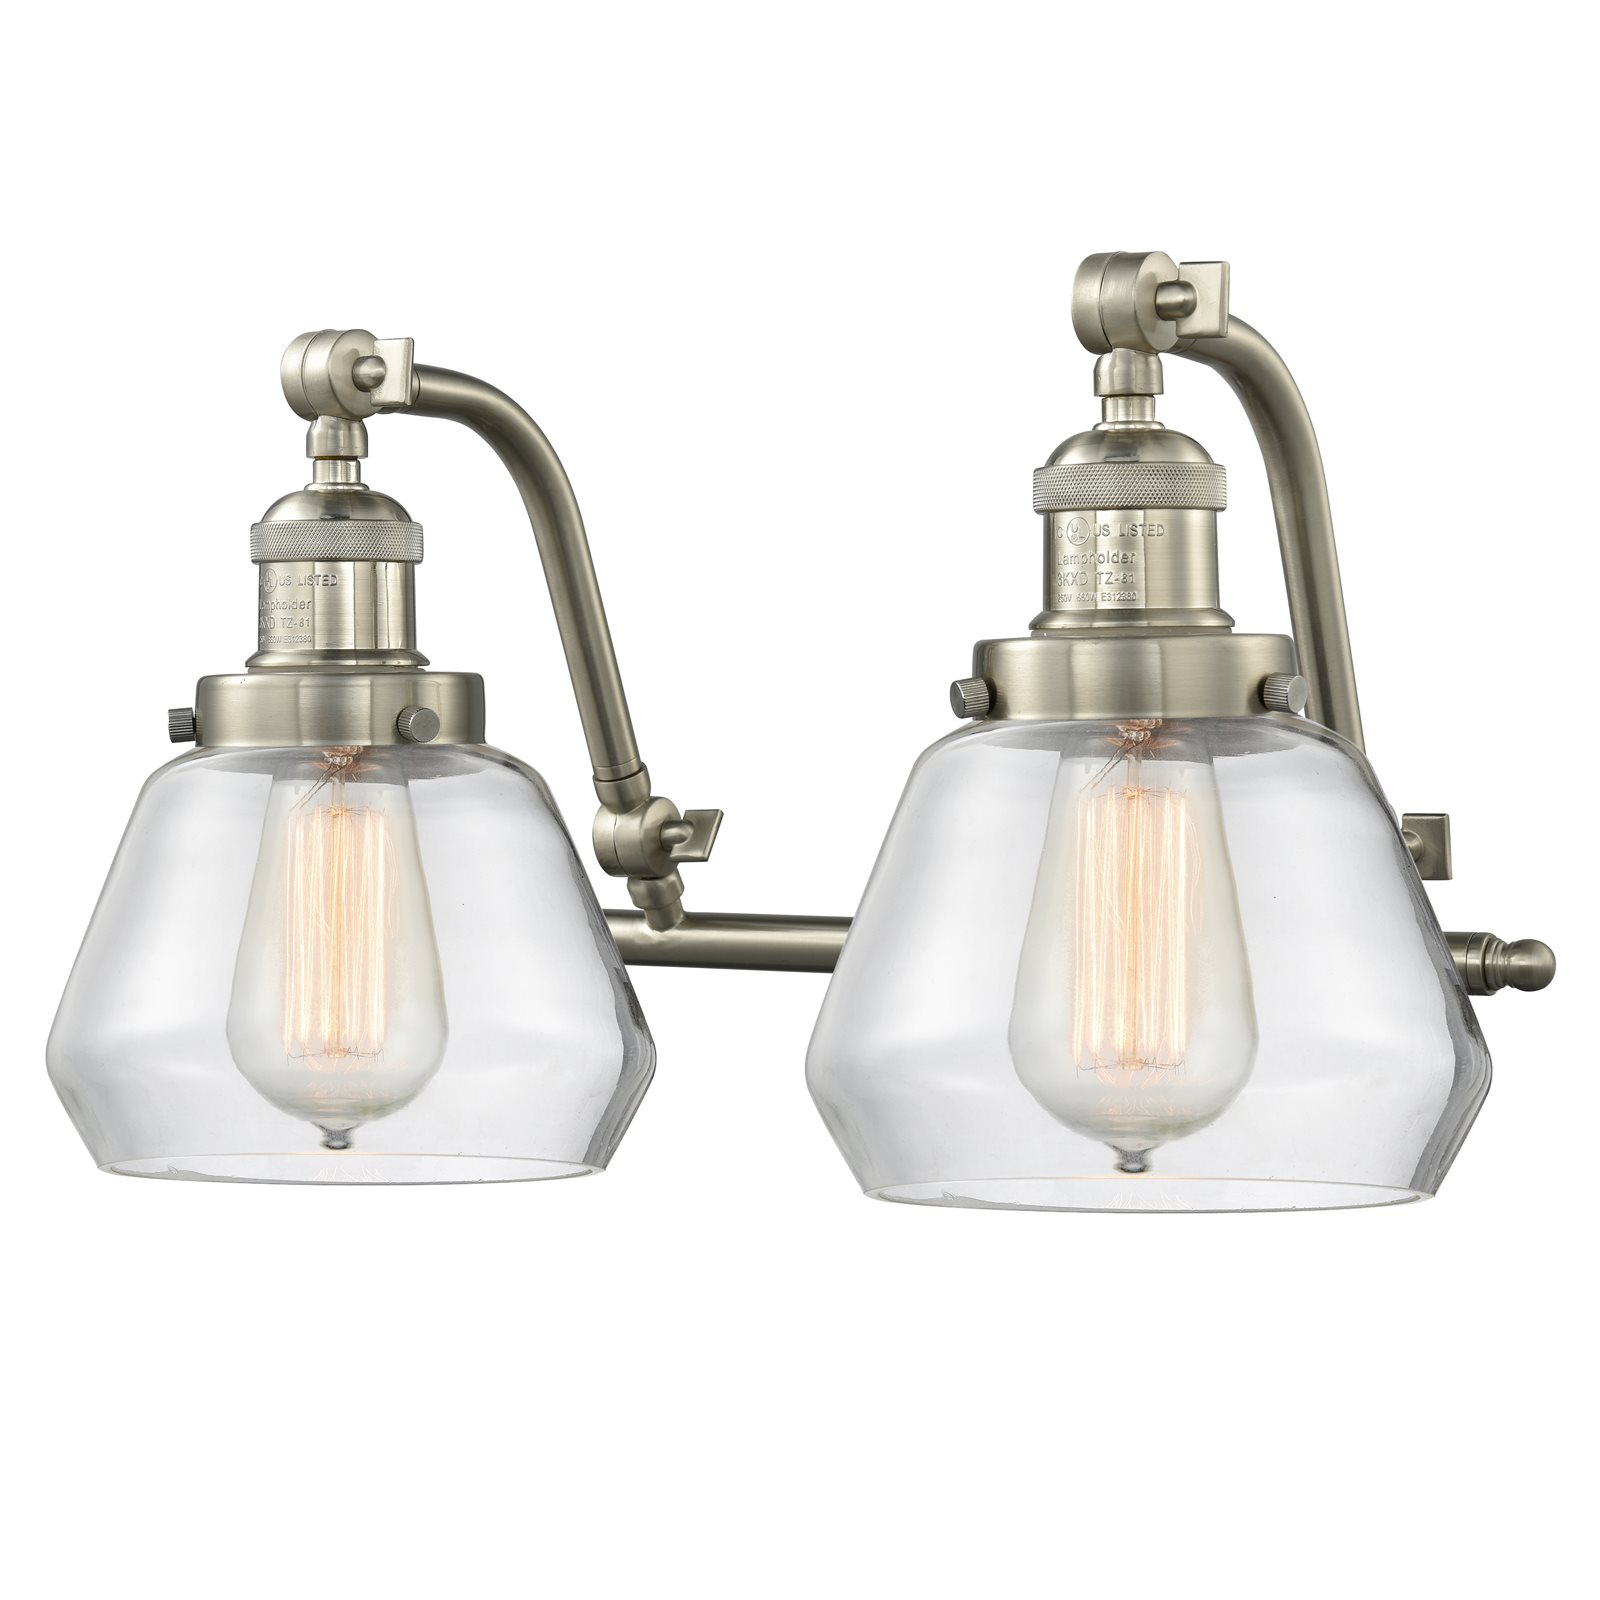 """Innovations 2-LT LED Fulton 18"""" Bathroom Fixture Brushed Satin Nickel 515-2W-SN-G172-LED by"""